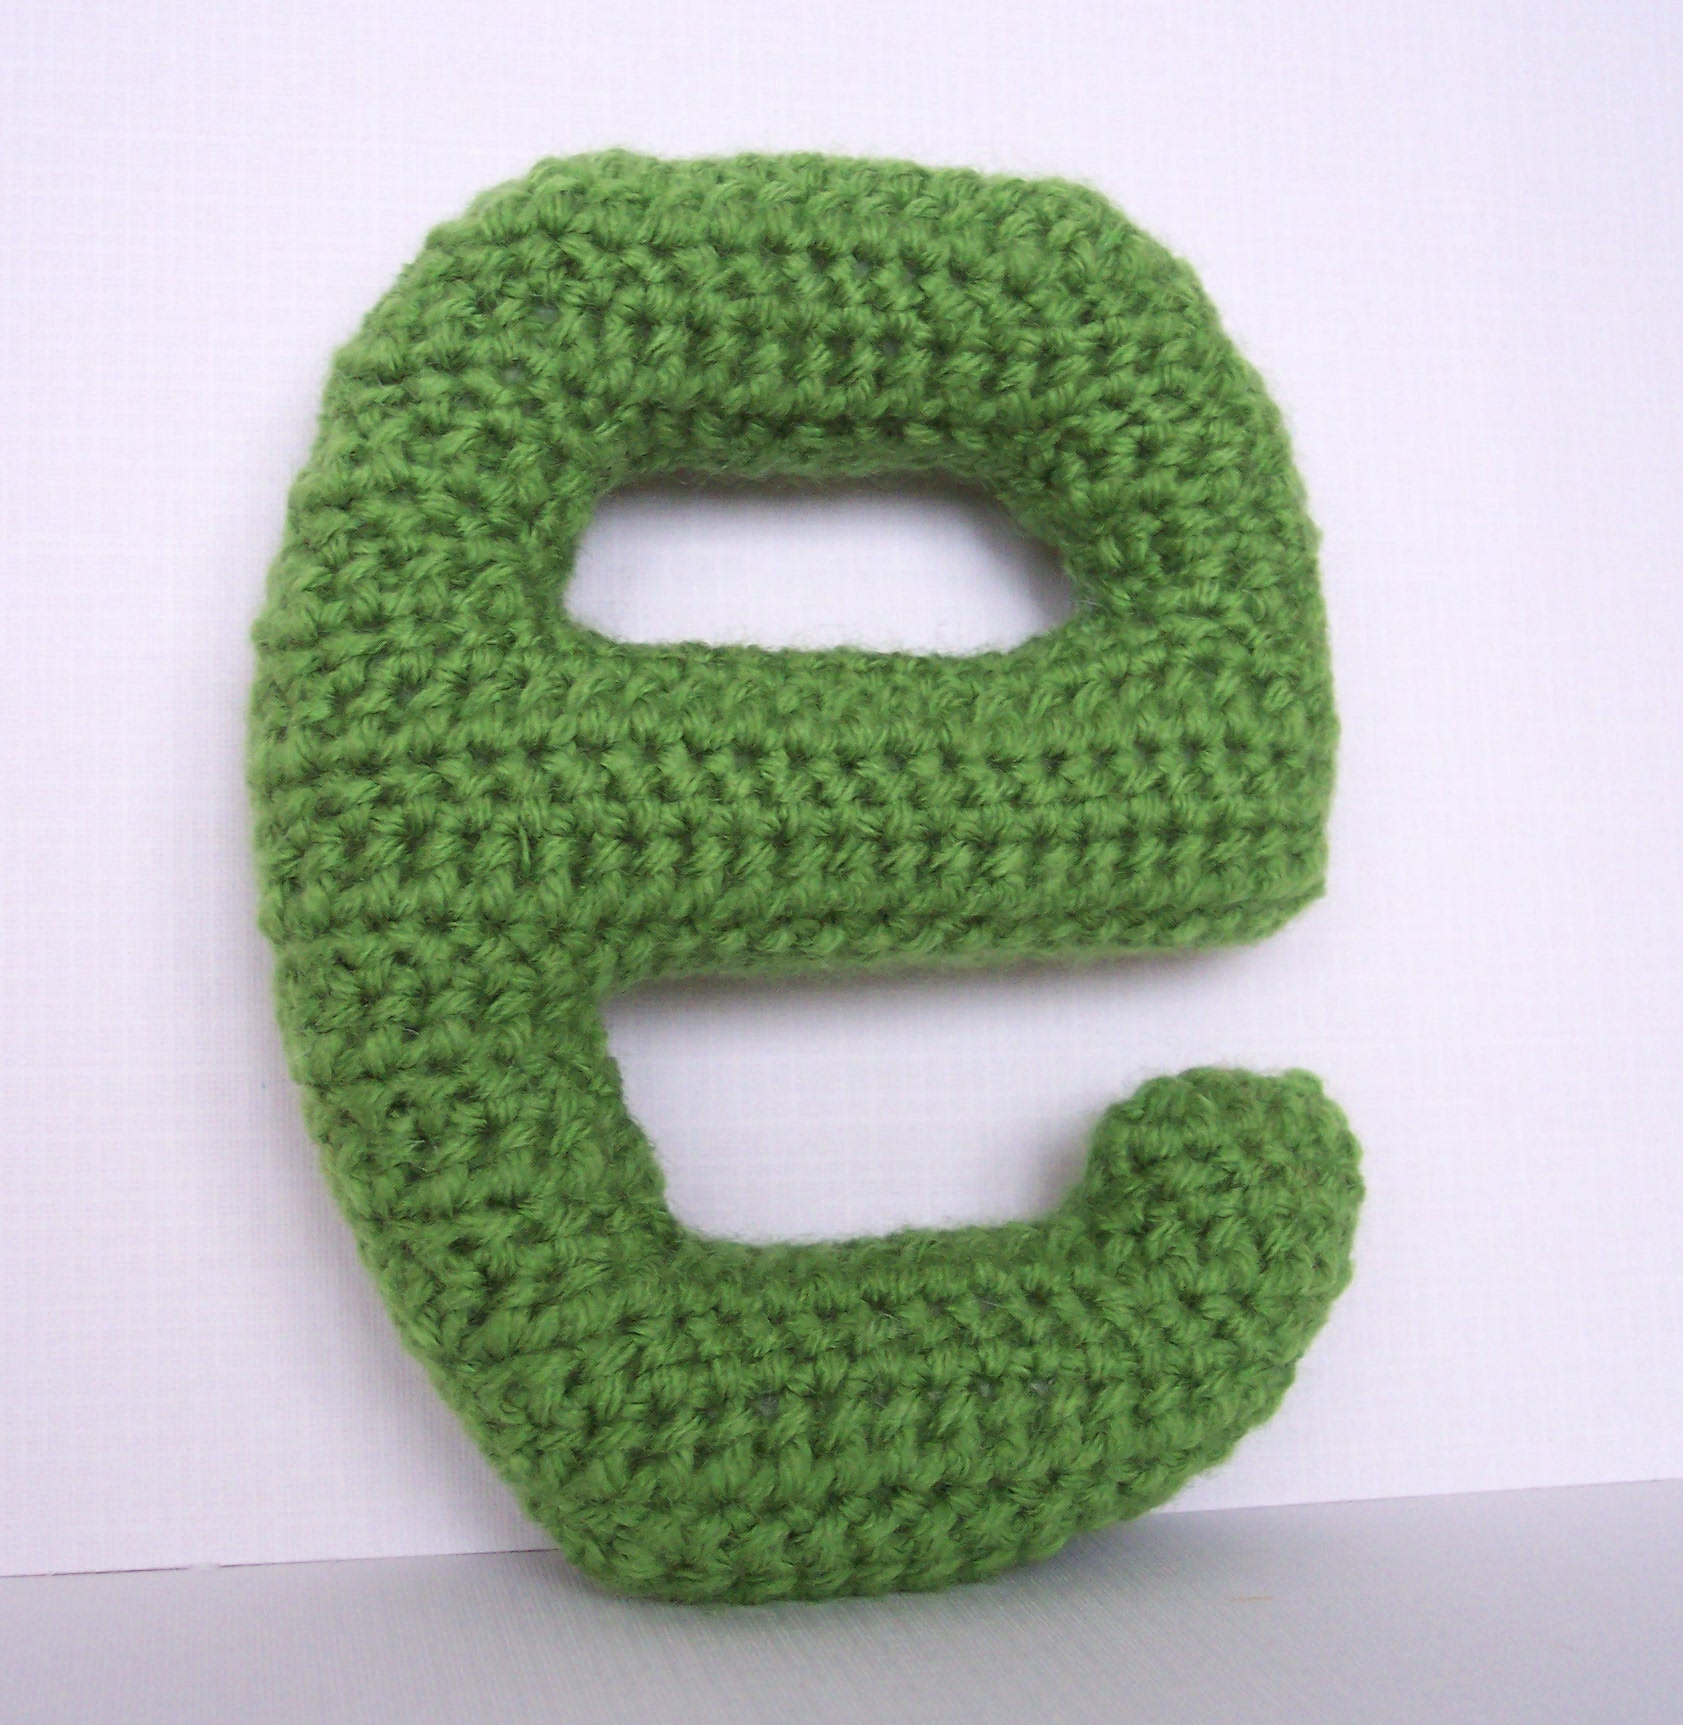 Crochet Geek - Crochet Tips: How to Make Letters on Crochet